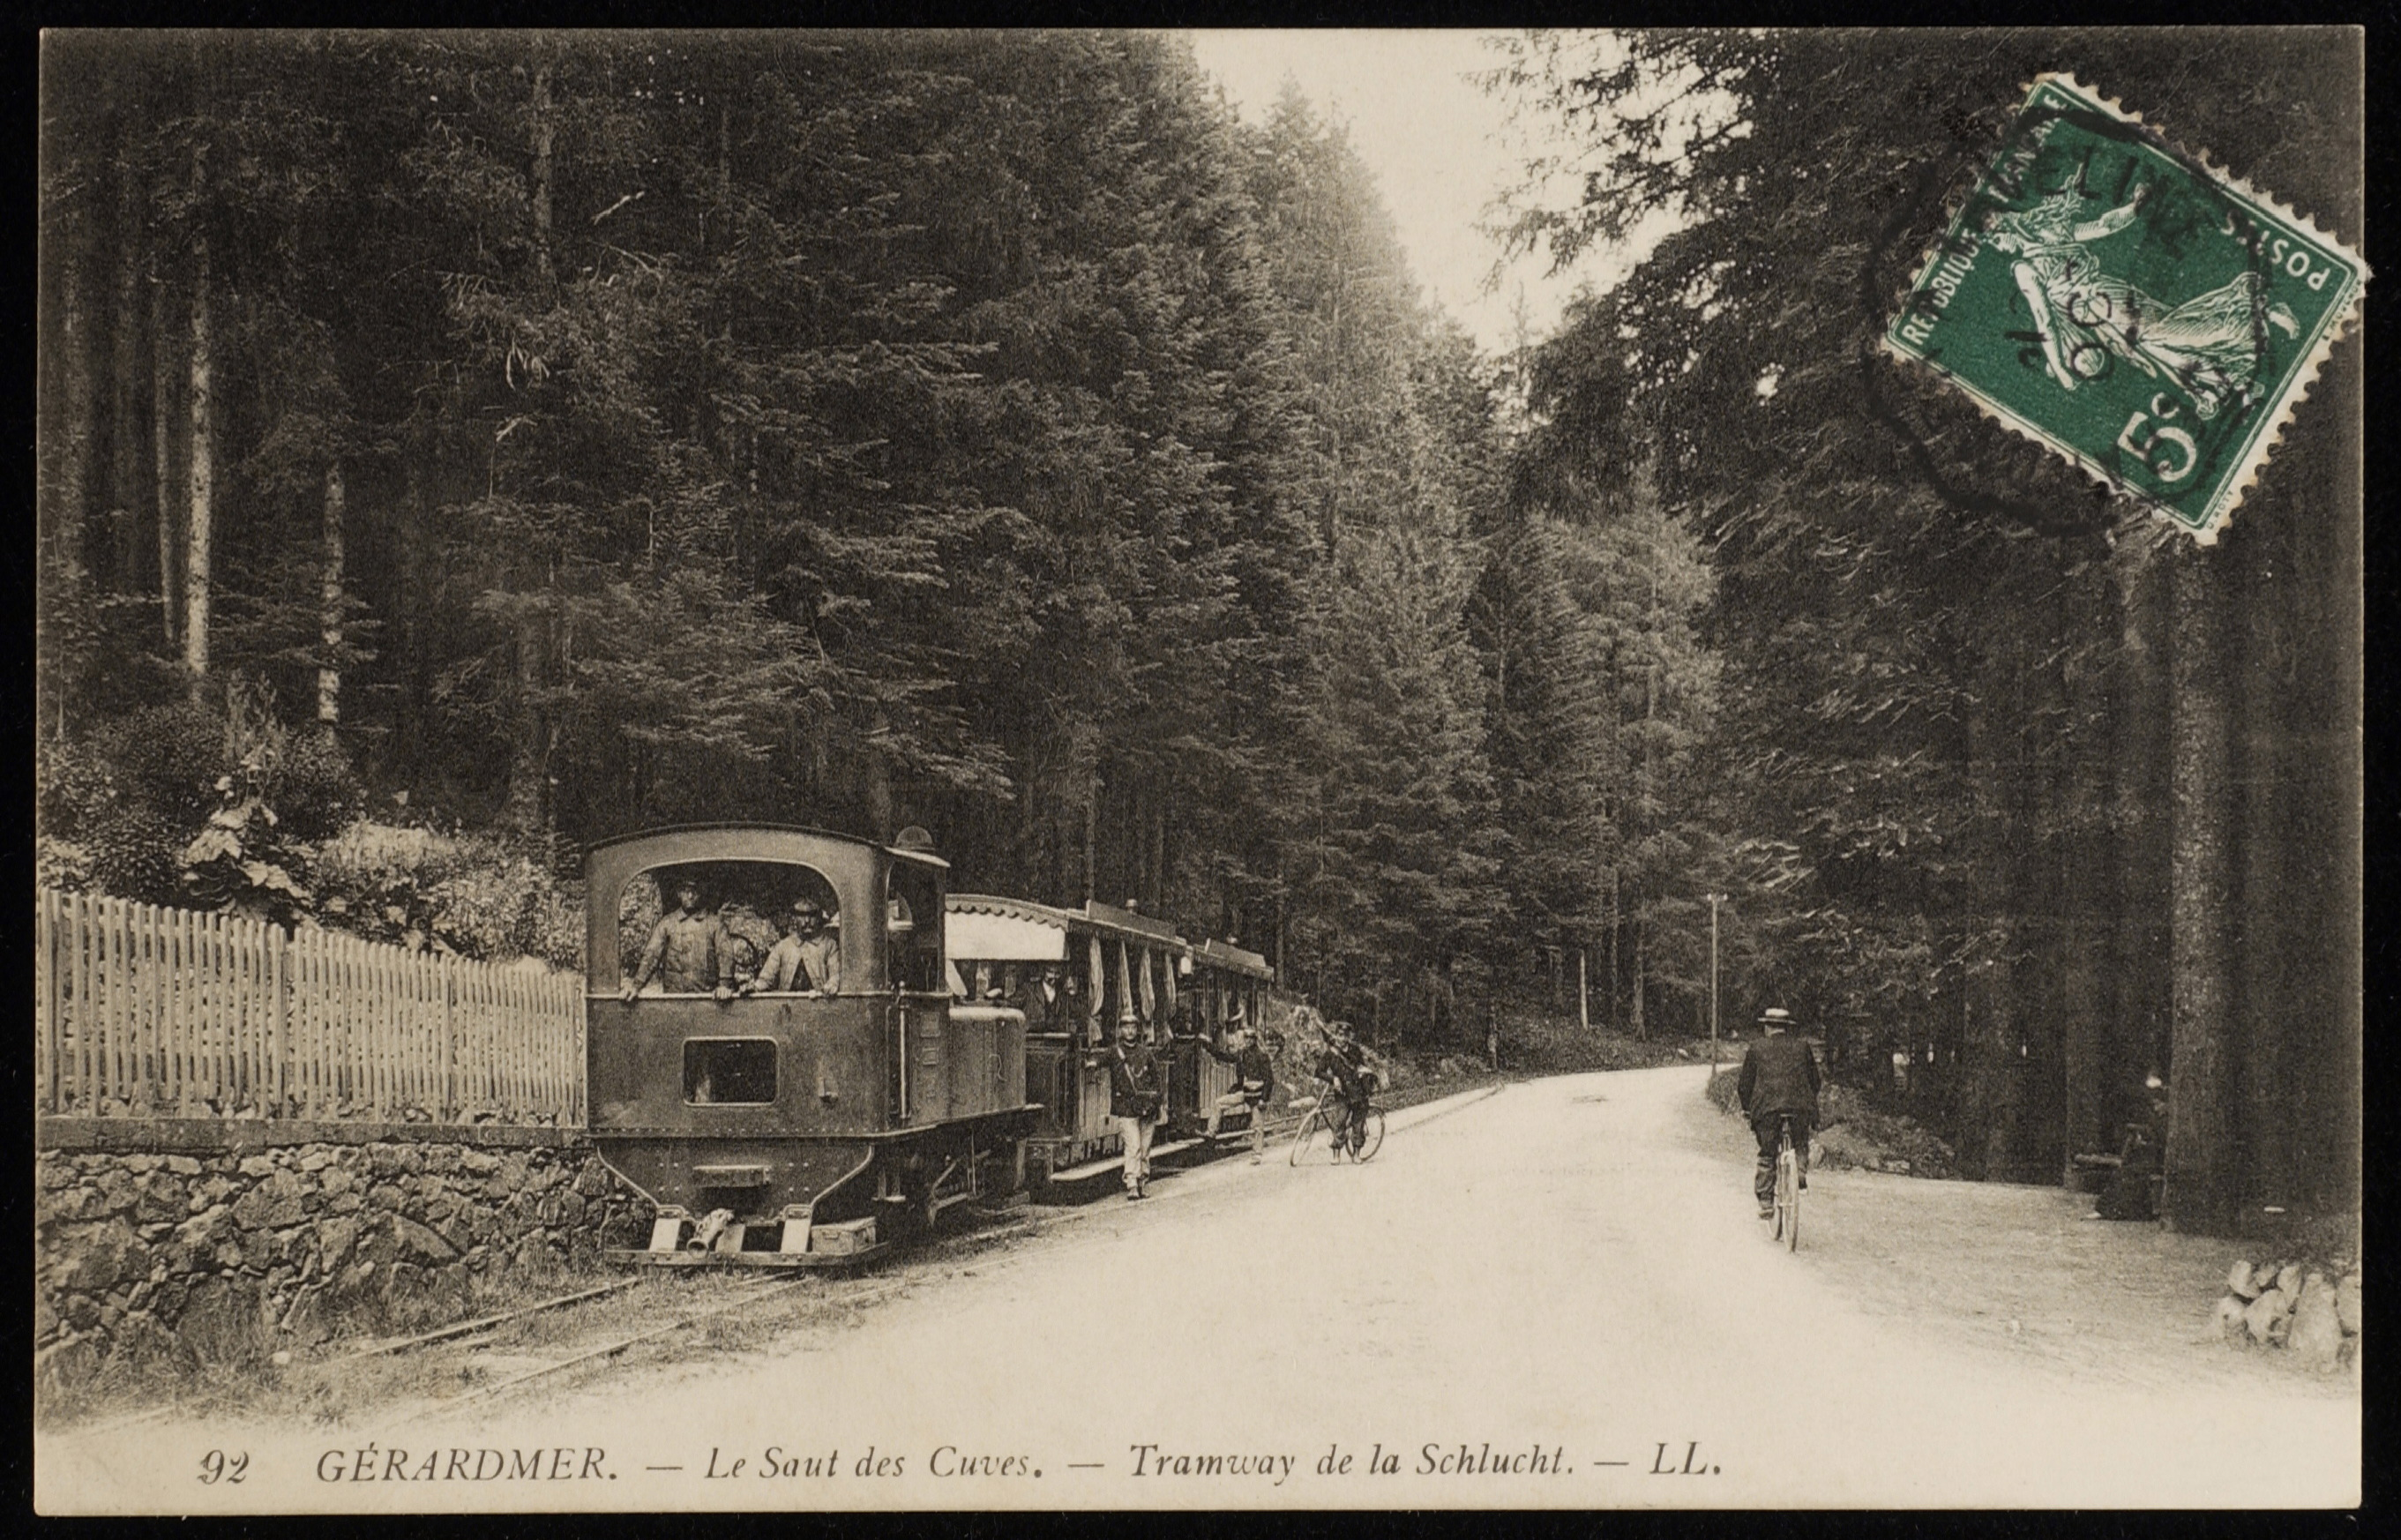 07. Construction et transformation de la route de la Schlucht (1859-1989)